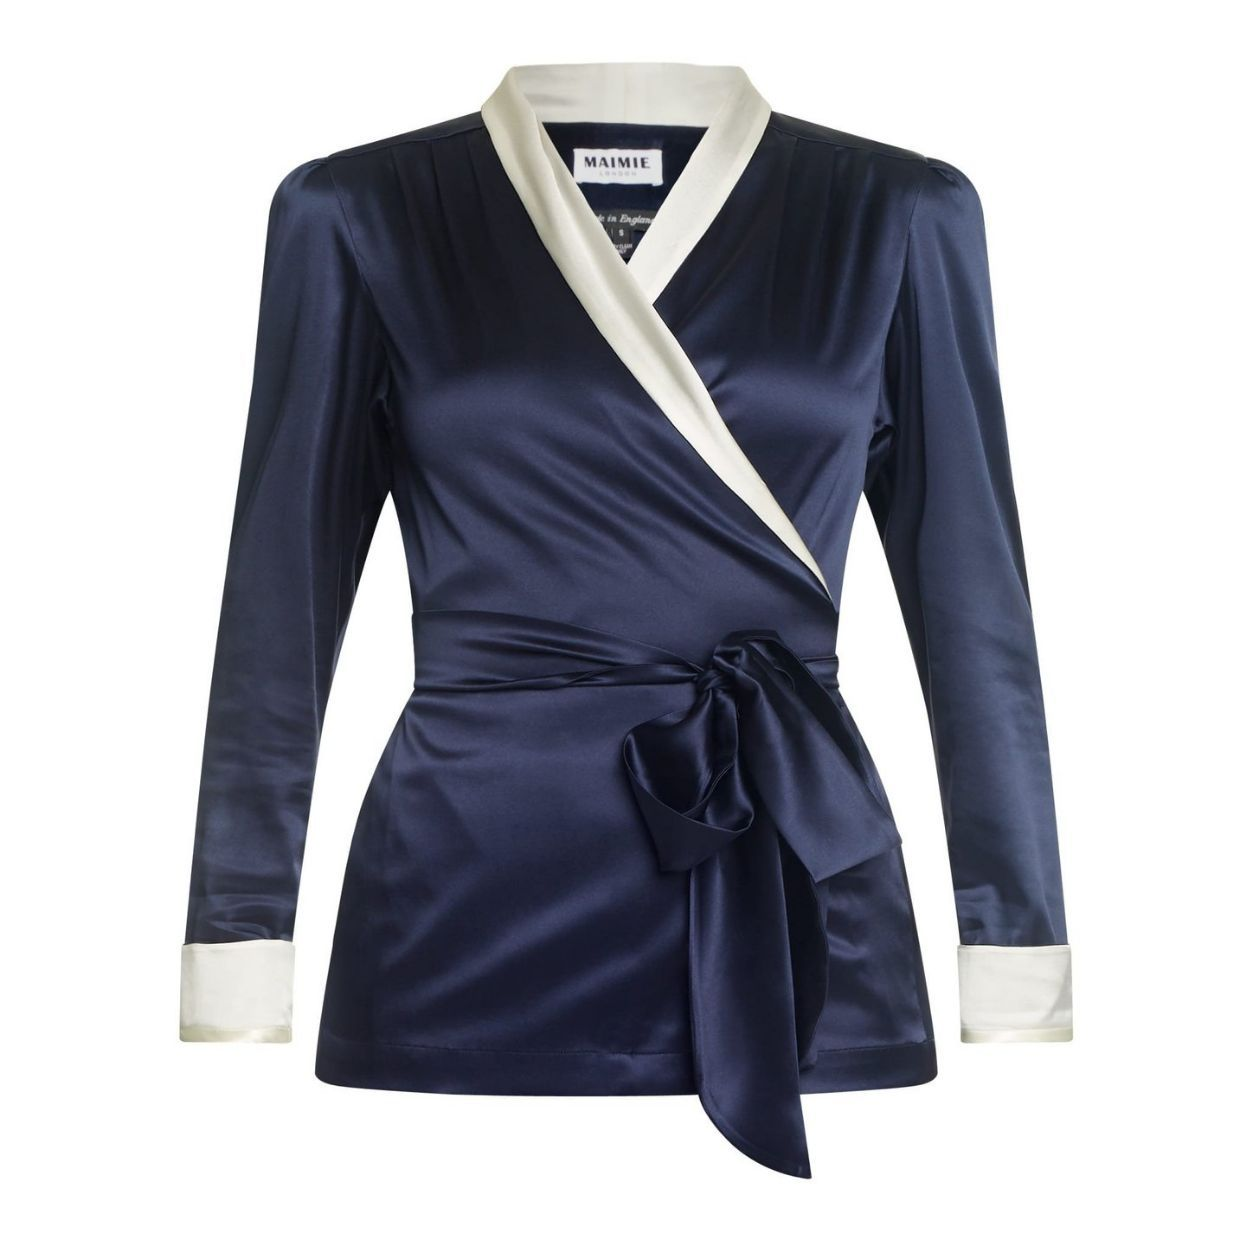 Navy and White Silk Jacket Natural x Lab, Matches Fashion, Liberty of London, Reve en Vert